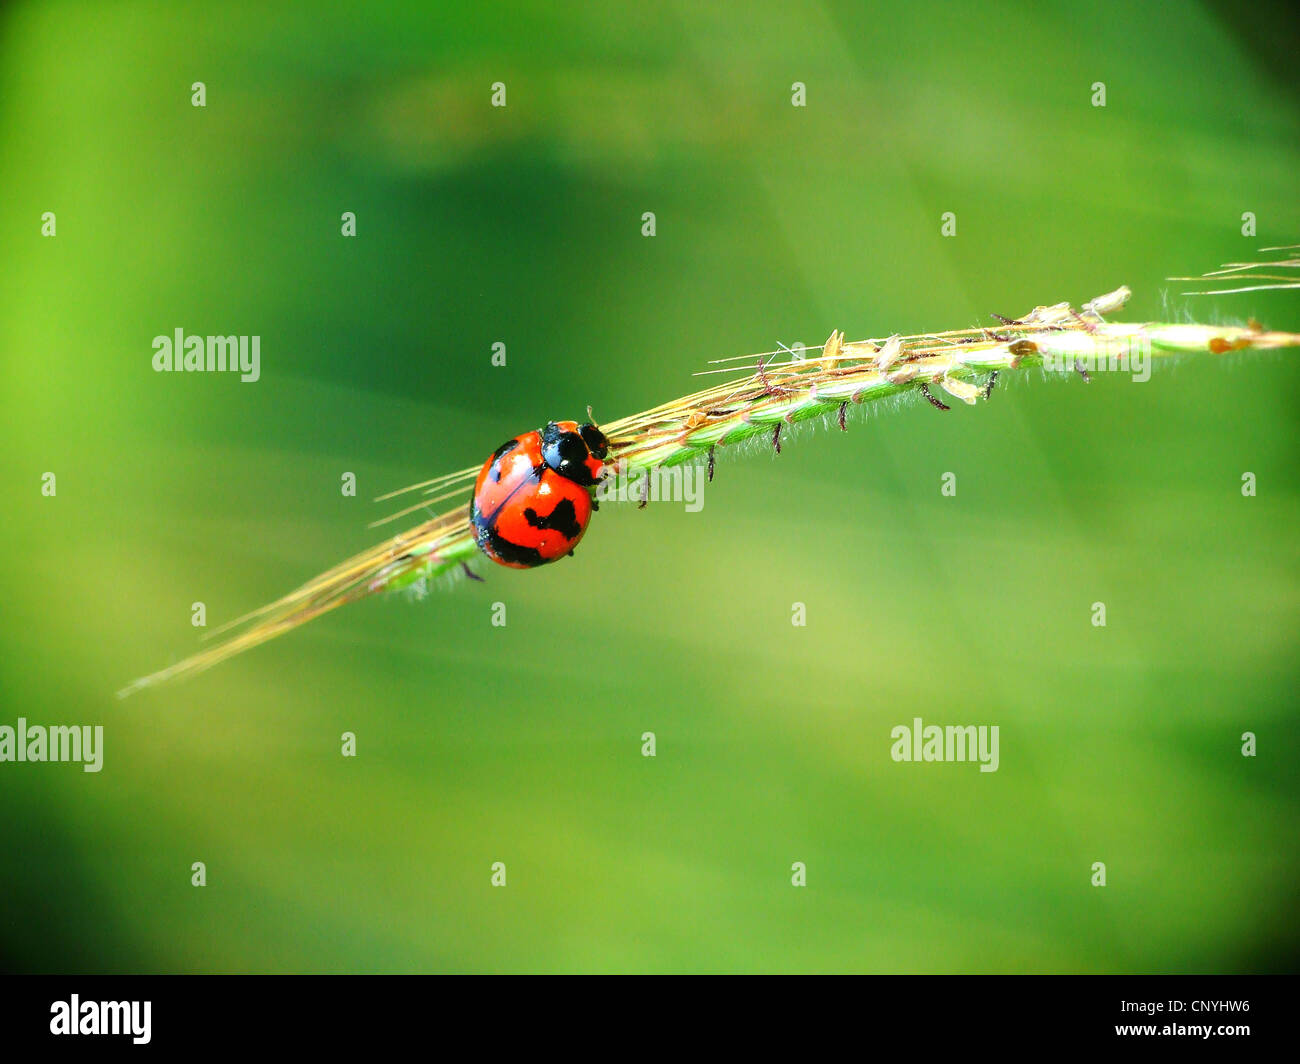 Ladybird on a grass - Stock Image